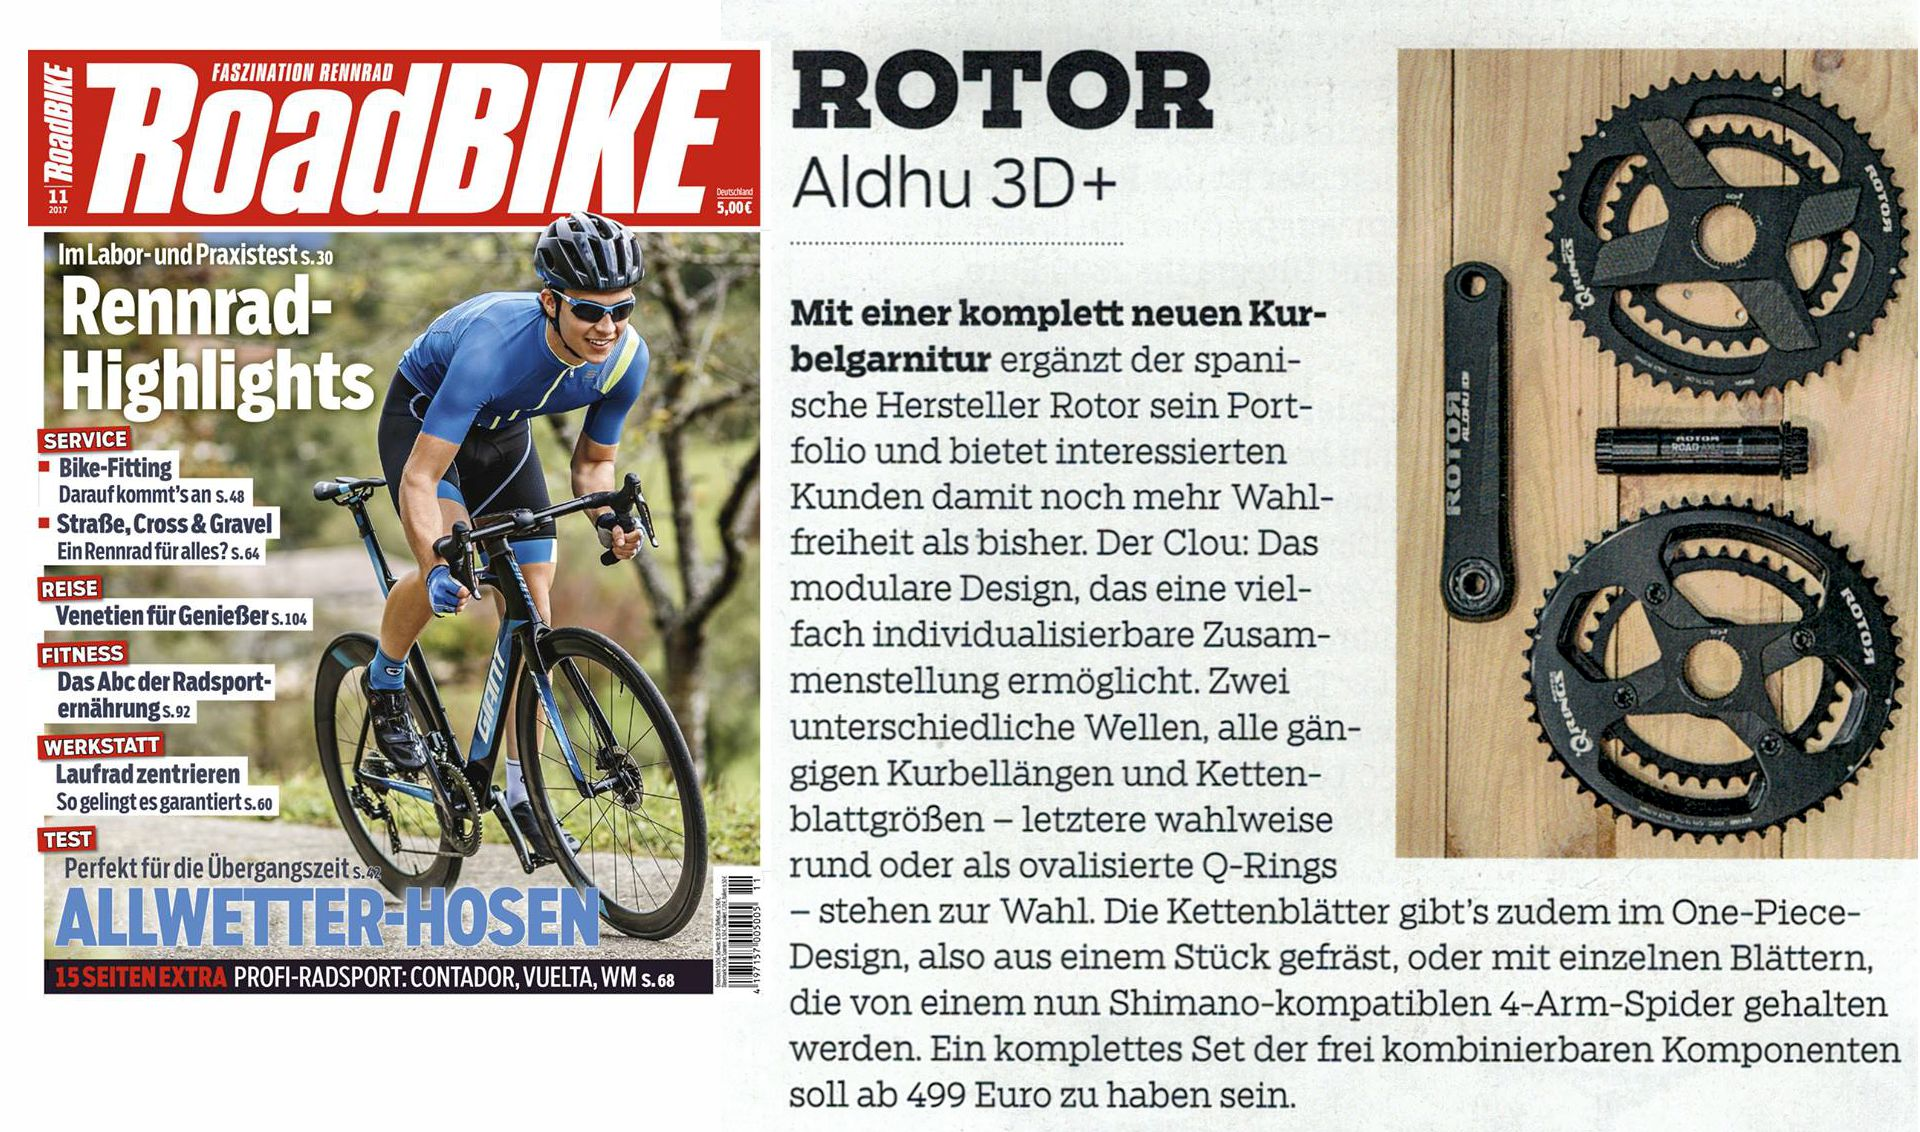 ROTOR ALDHU 3D+ in der Roadbike